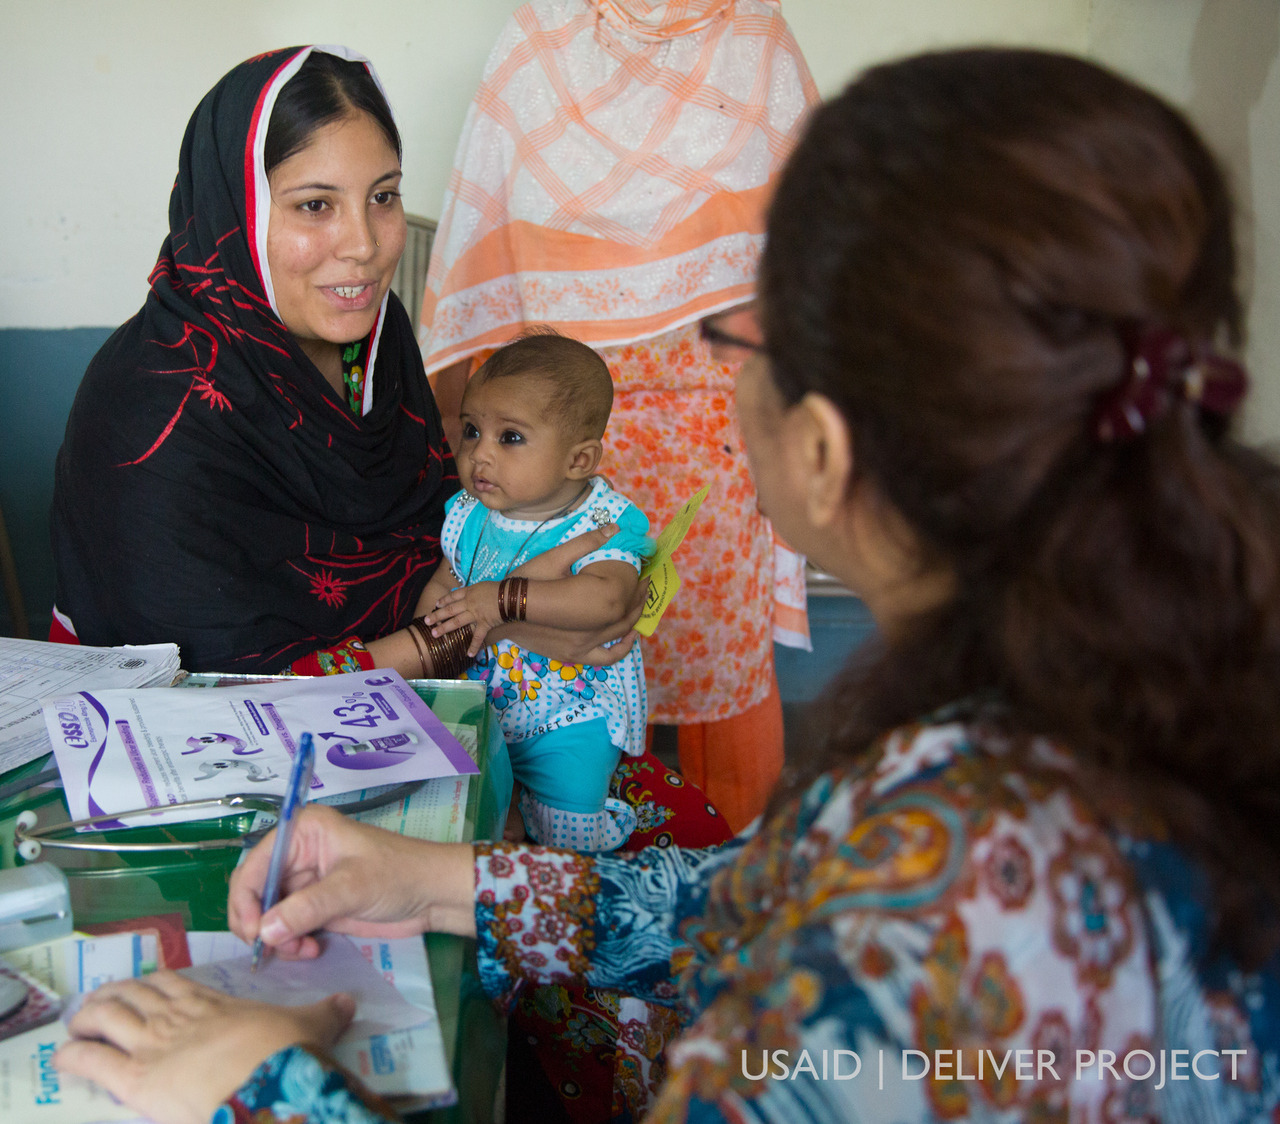 "Photo Credit: Derek Brown, USAID | DELIVER PROJECT At a Basic Health Unit in Punjab Province, Pakistan, 23-year-old Tahira Rashid receives counseling by Dr. Fauzia Amin, a female medical Officer.   ""I have one child less than one year of age and my mother in law has passed away and it is difficult for me to handle the child and house work together. So, I came here for a gap before the next baby. Dr. Fauzia Amin is guiding me and helping me to avoid pregnancy.""  -Tahira Rashid"